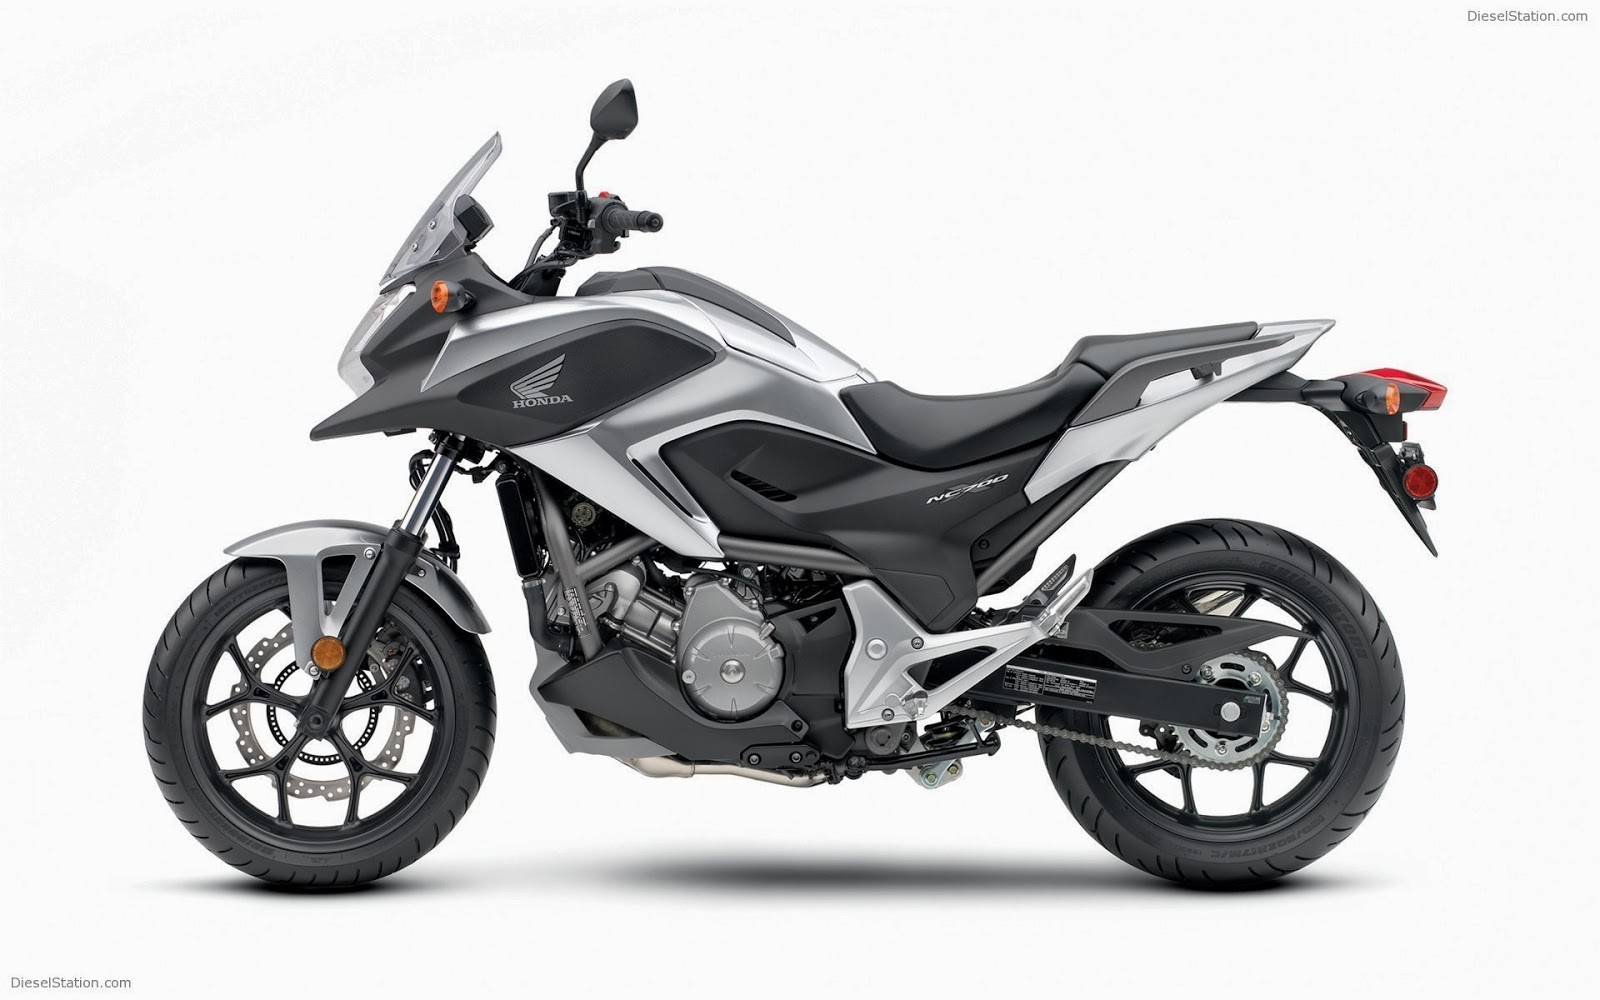 honda nc700x 2014 wallpaper just welcome to automotive. Black Bedroom Furniture Sets. Home Design Ideas